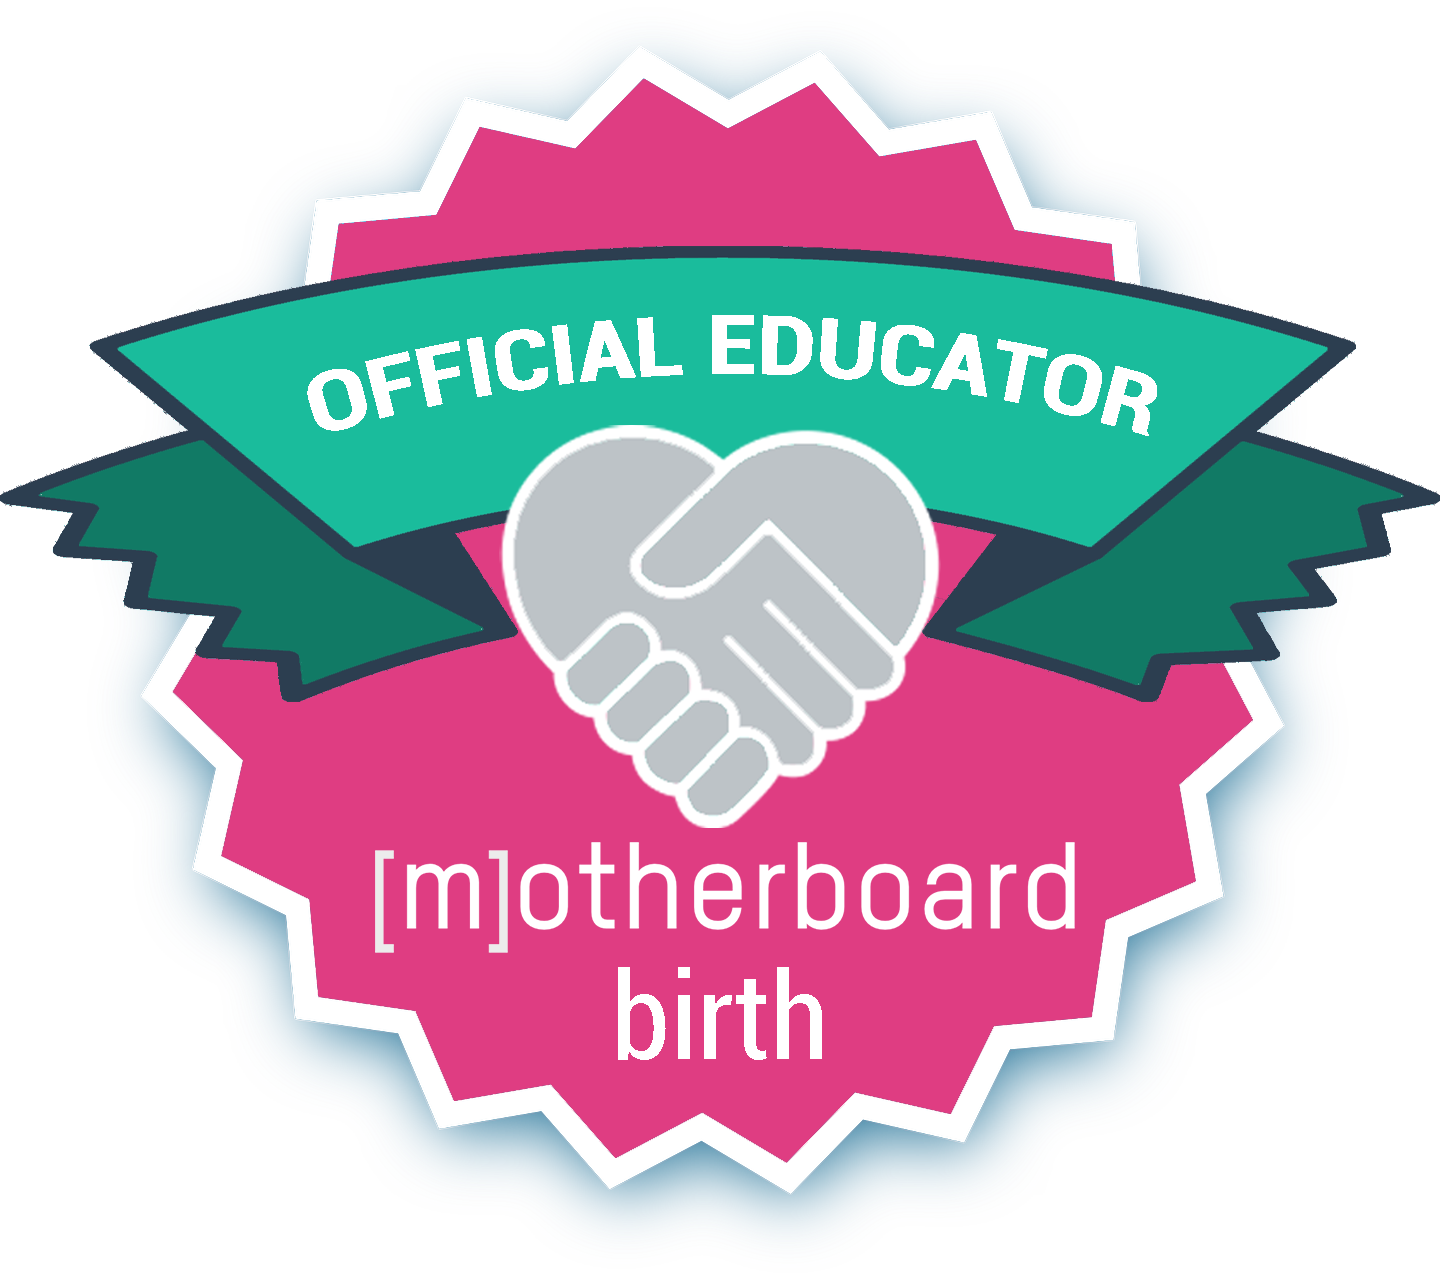 Motherboard Educator Badge pink